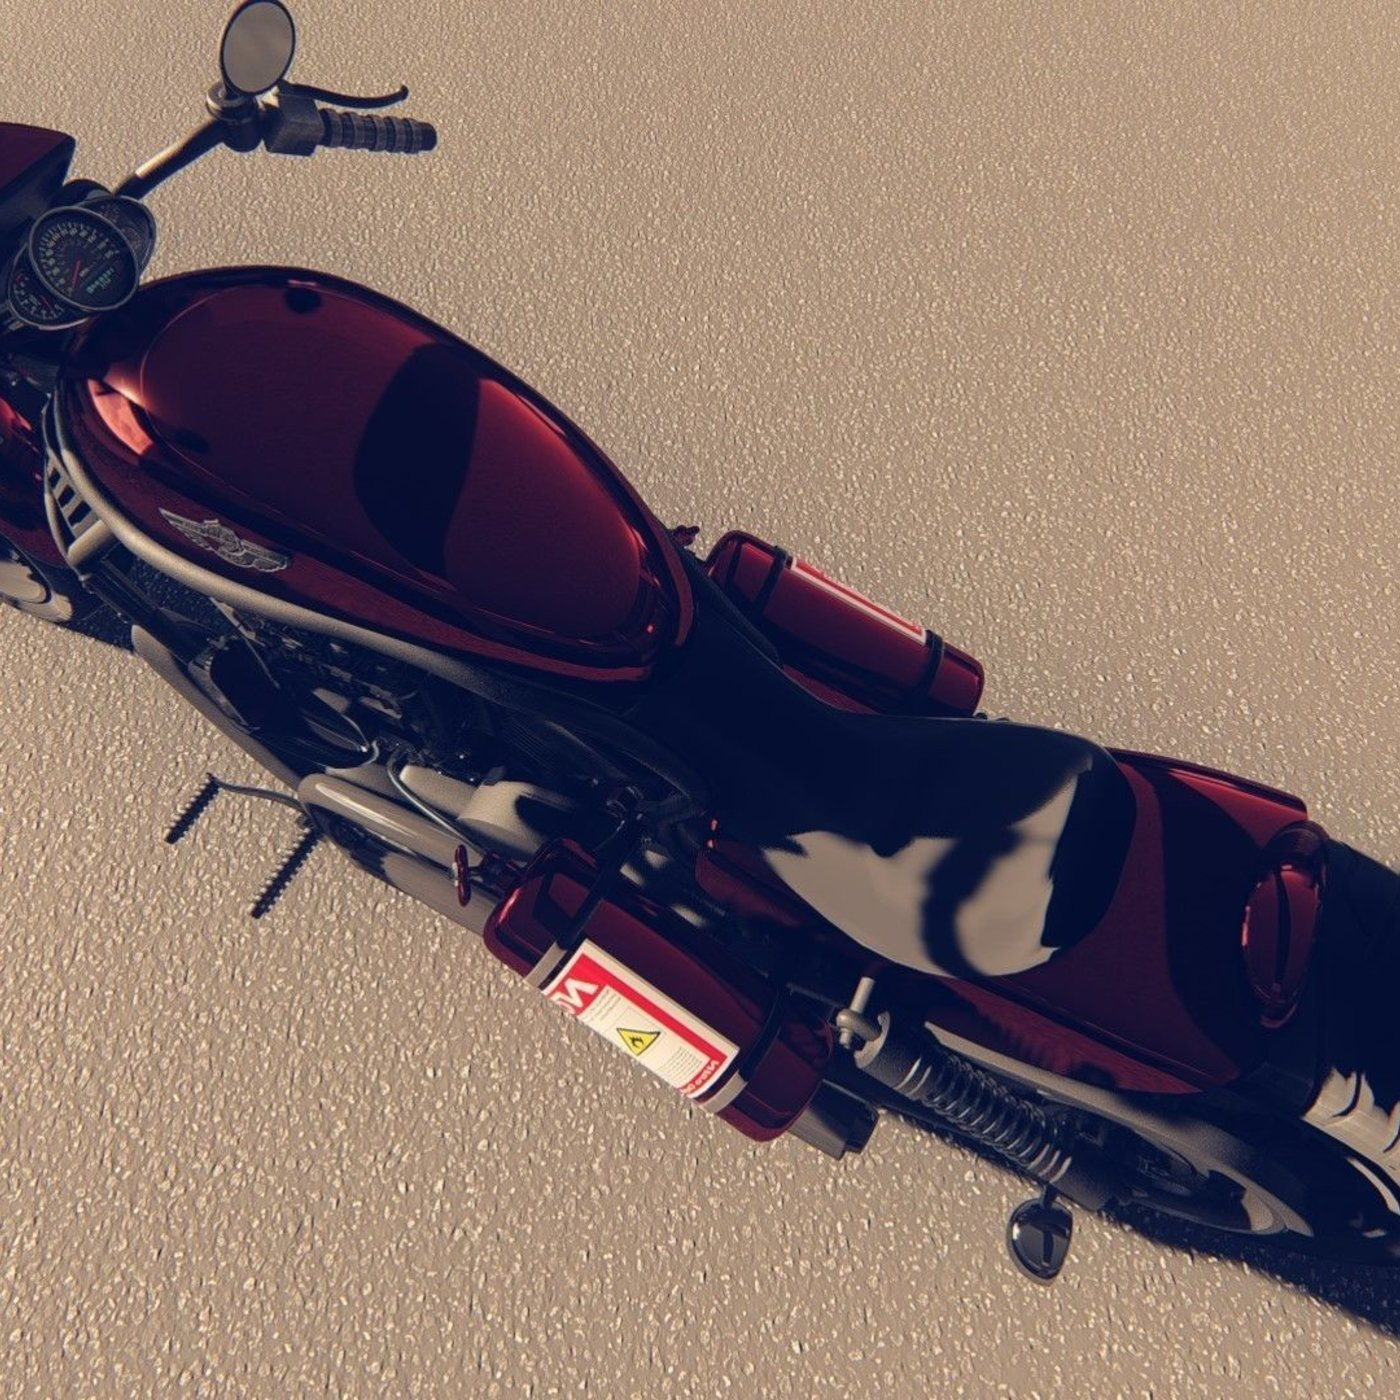 3d motorcycle